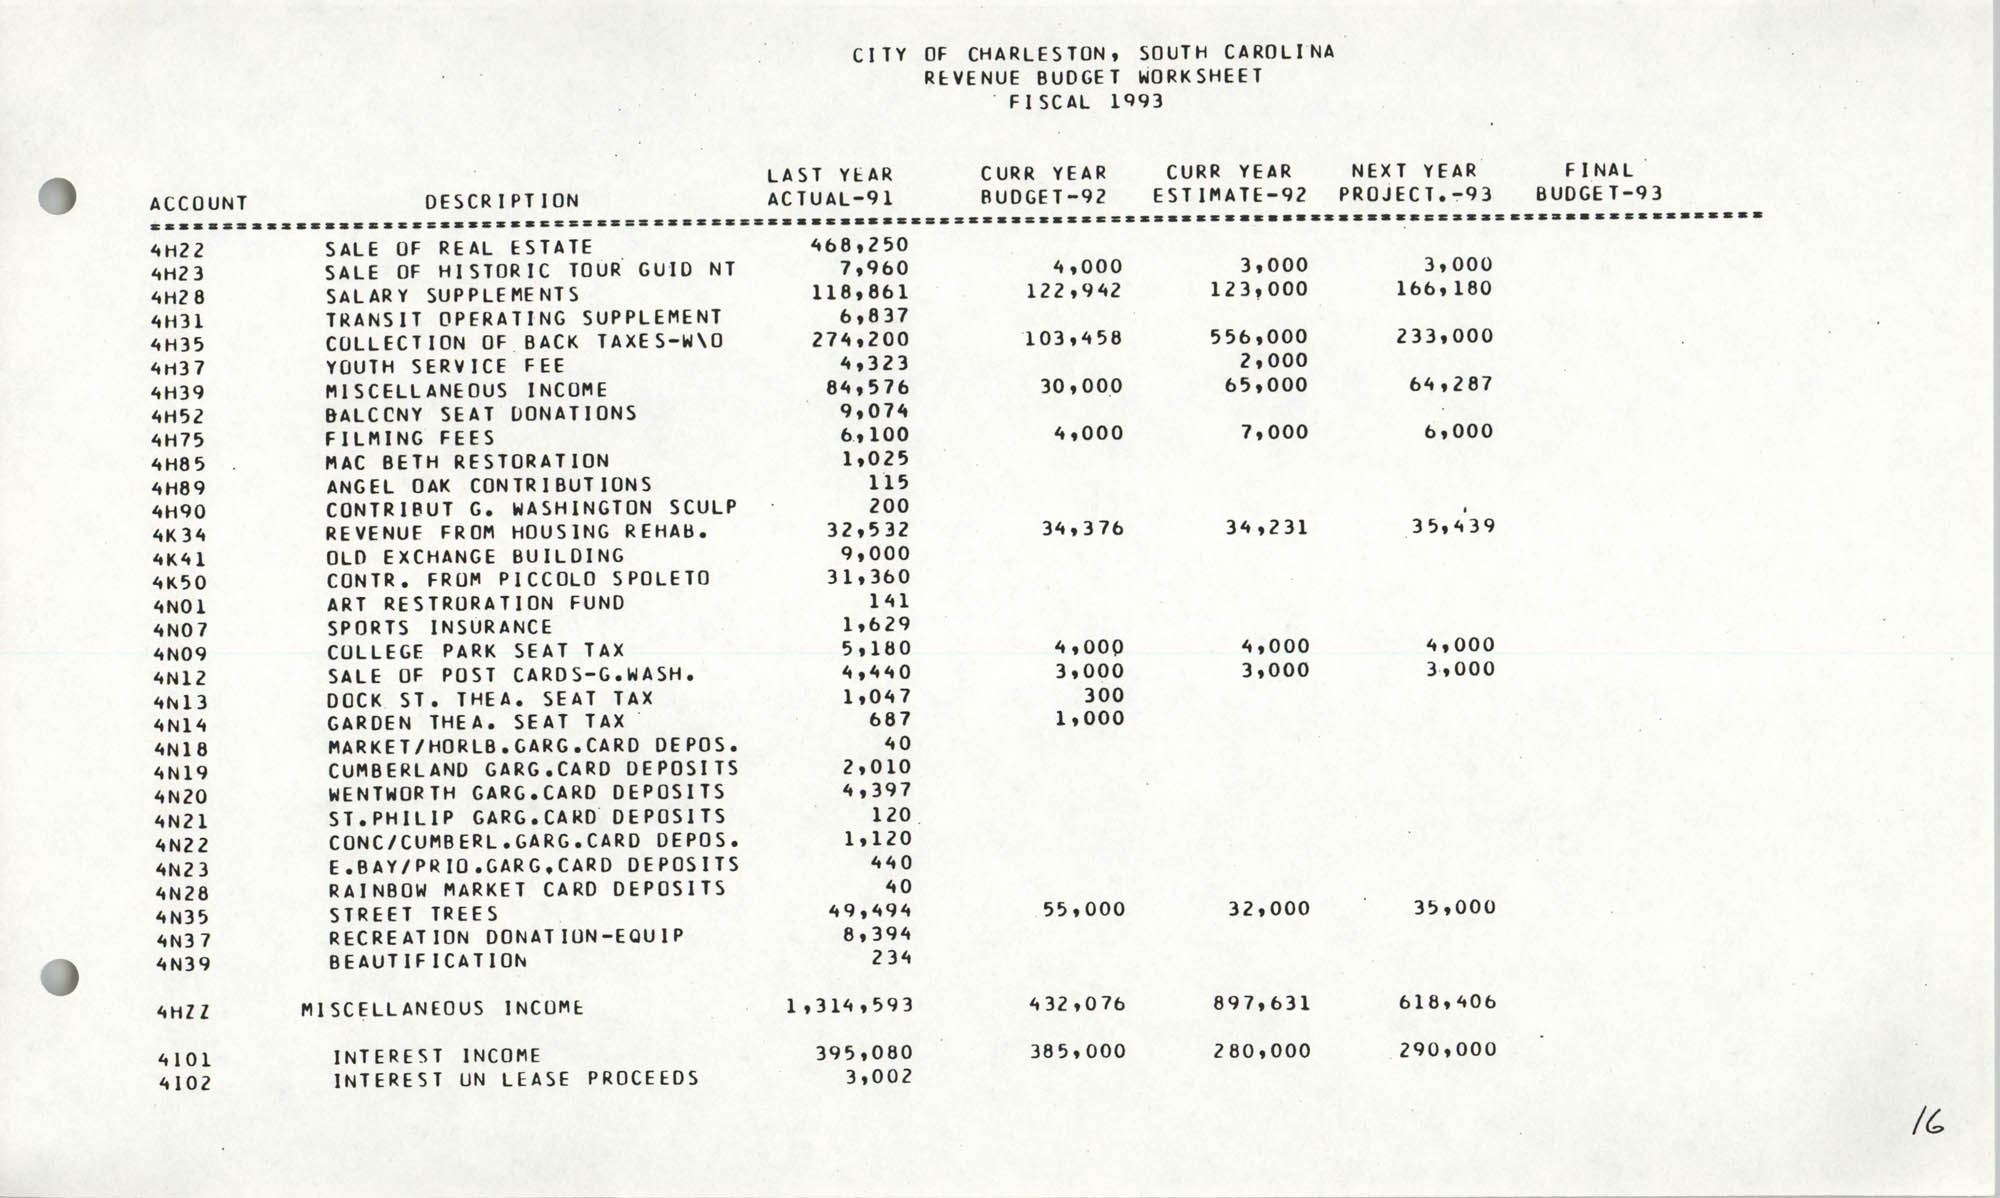 The City Council of Charleston, South Carolina, 1993 Budget, Page 16